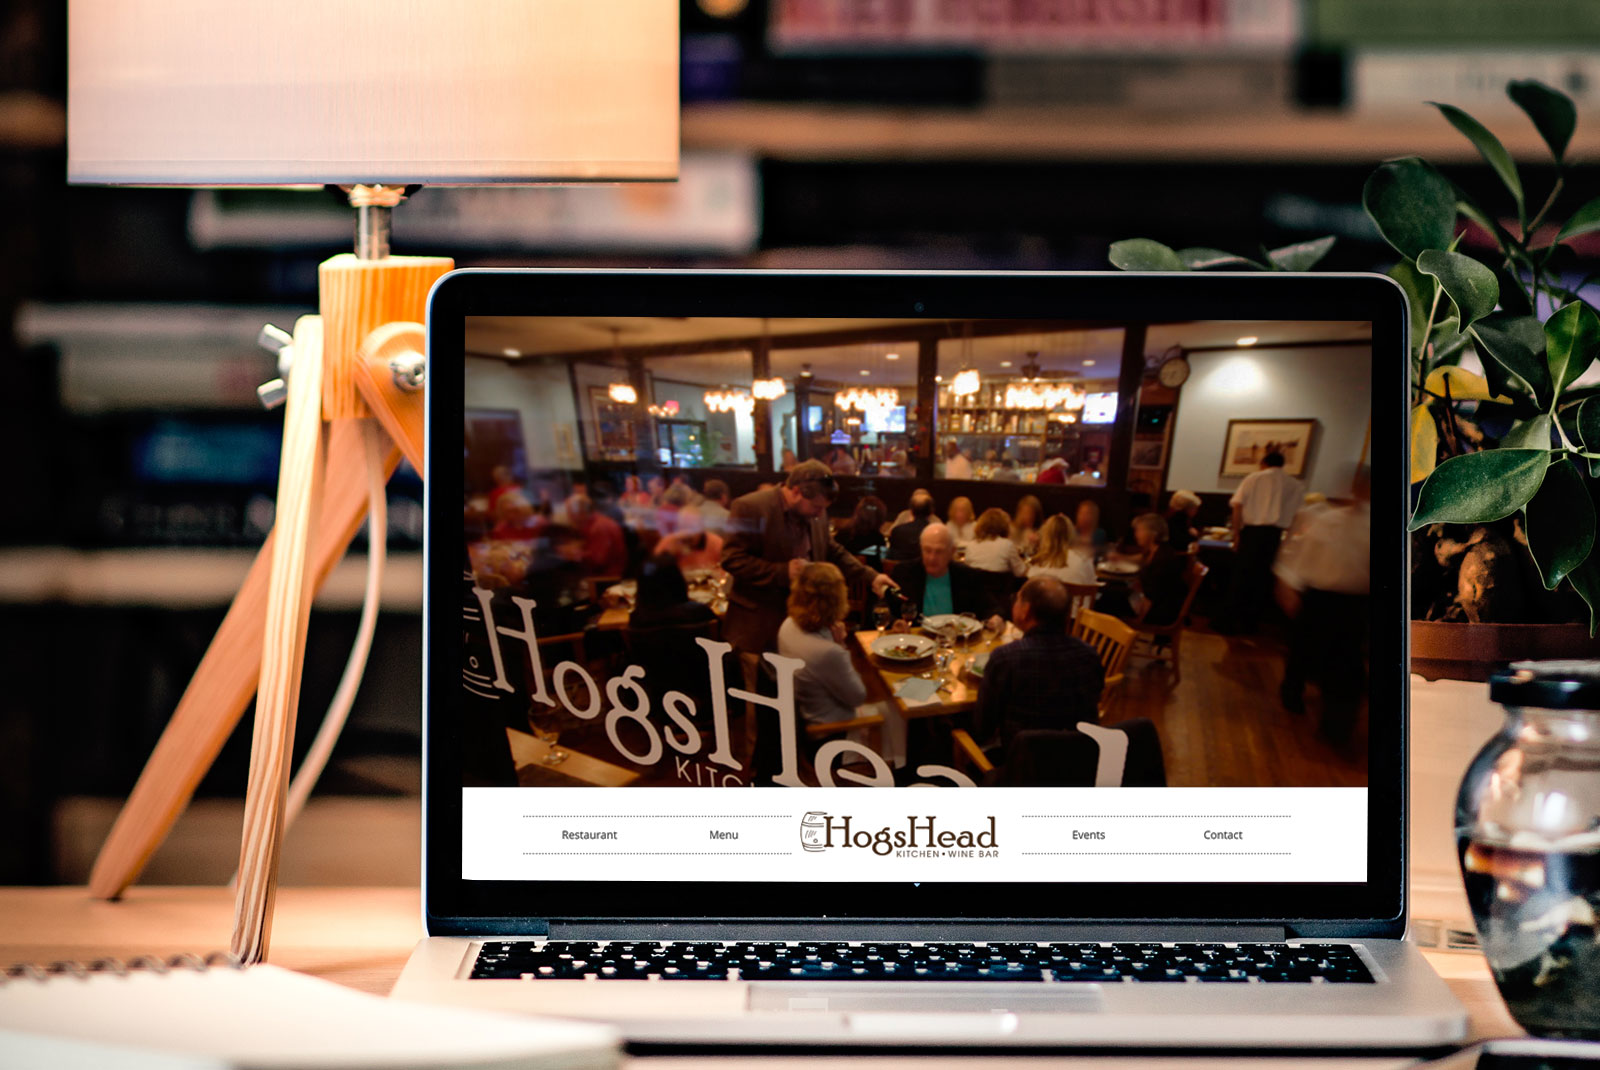 Hogs Head Kitchen And Wine Bar - Simple Restaurant Website Design